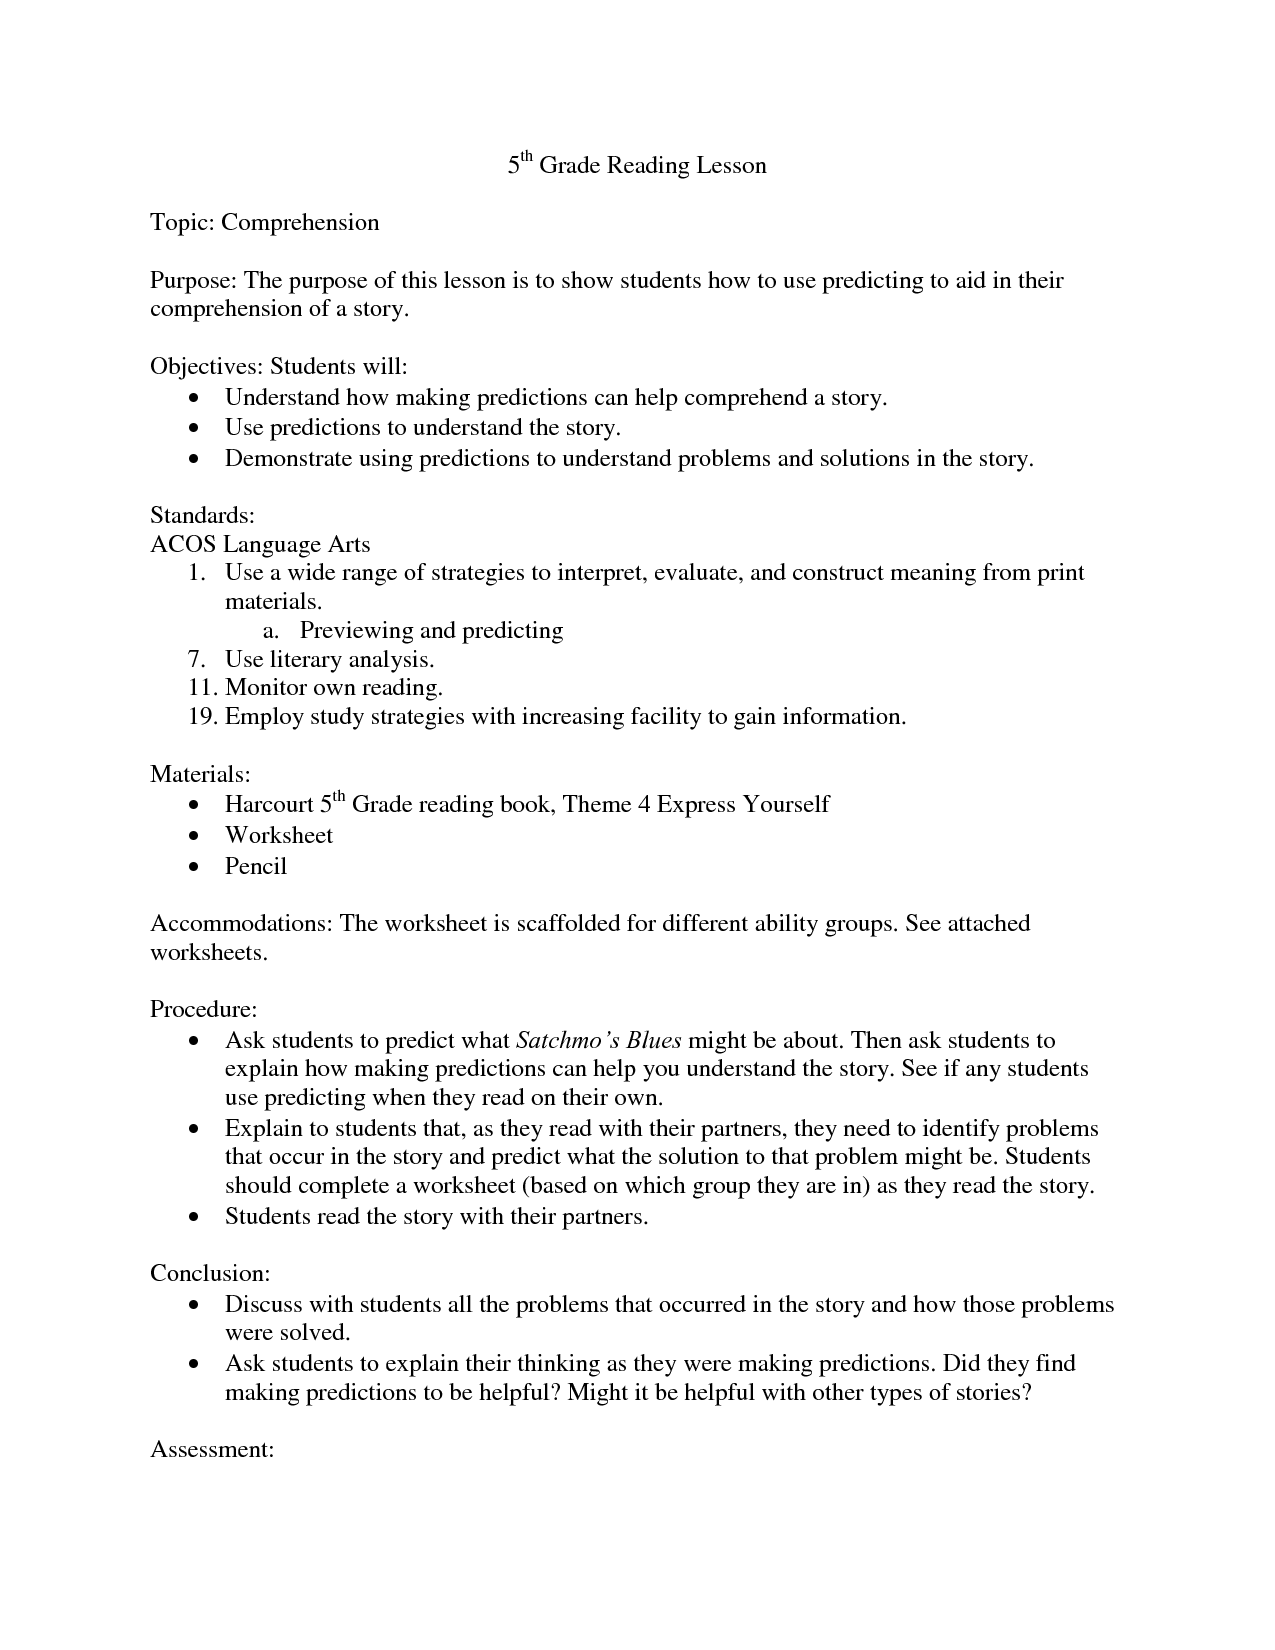 Printables Ela Worksheets For 5th Grade ela worksheets for 5th grade thousands of worksheet activities check out the atmosphere language arts worksheets